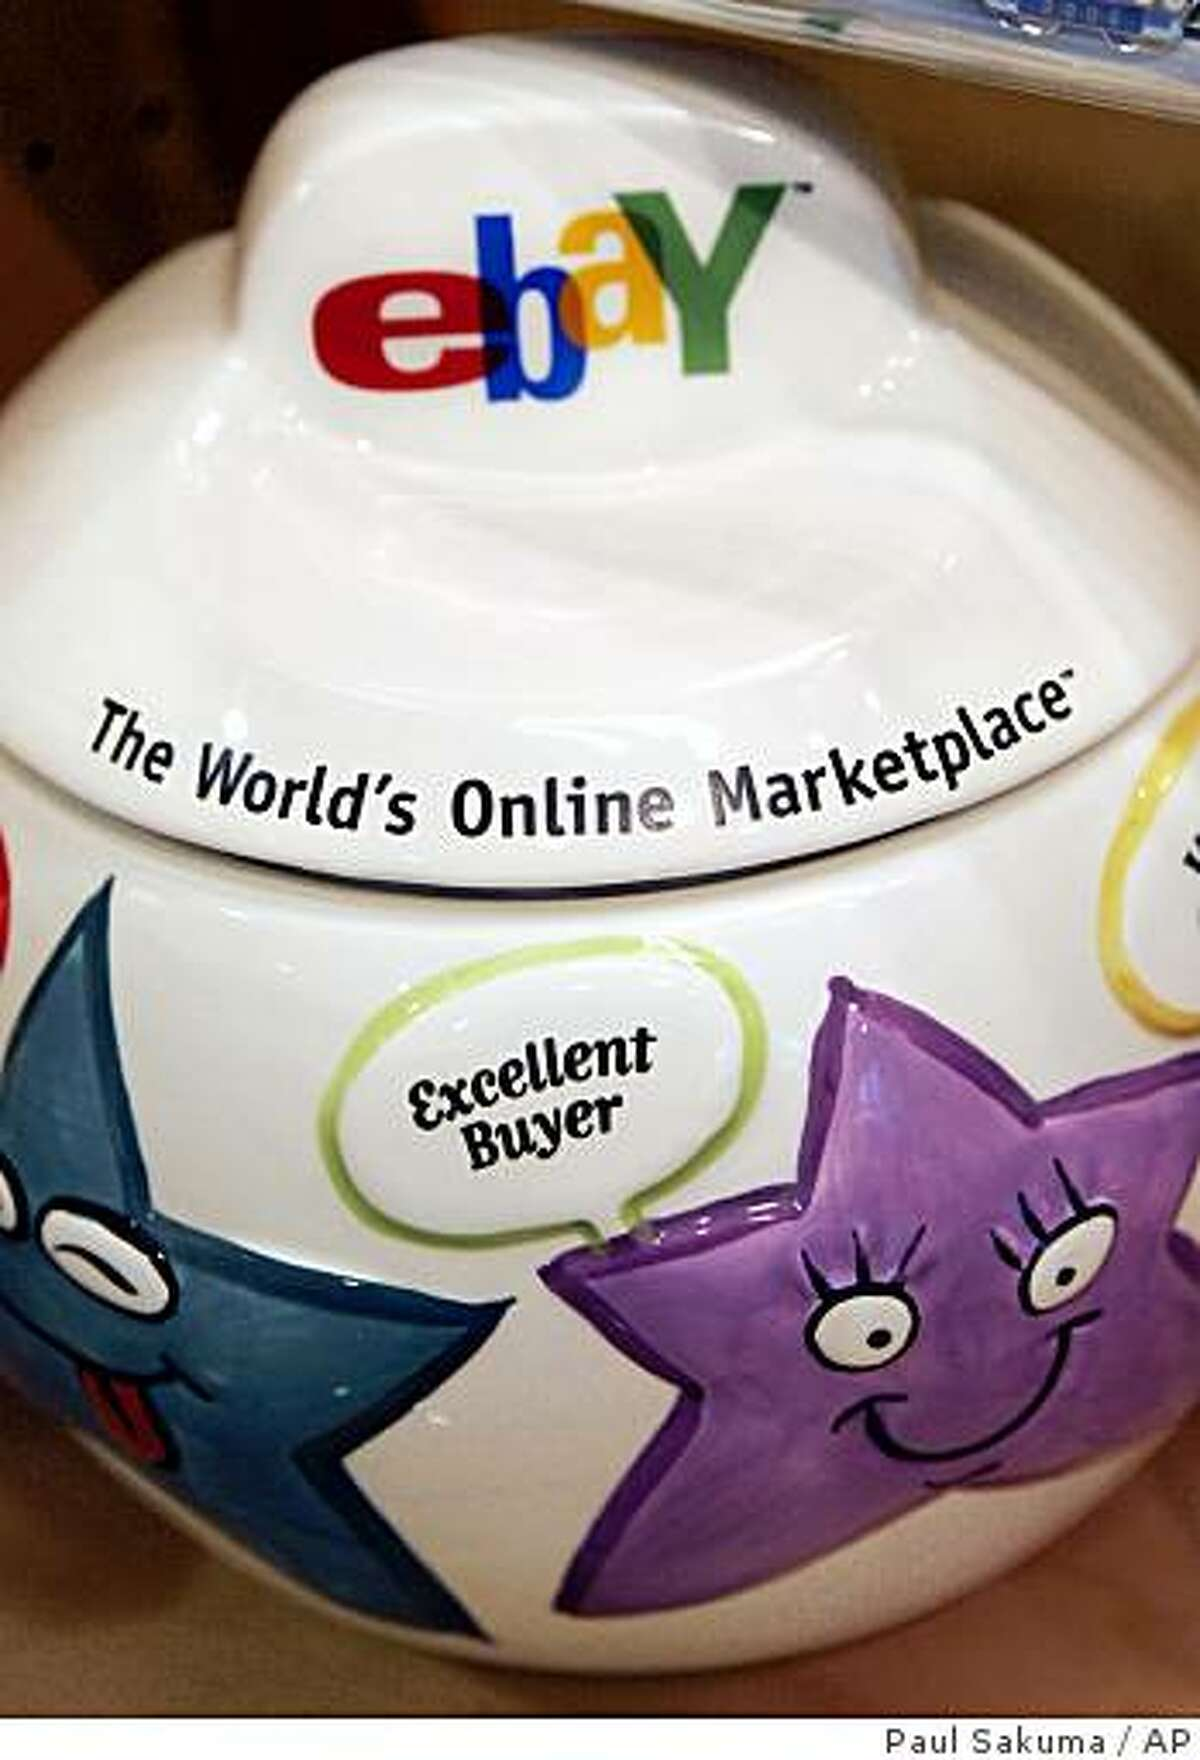 Changes announced at eBay are the latest in a long line of alterations the company has made as it has struggled to improve its online marketplace